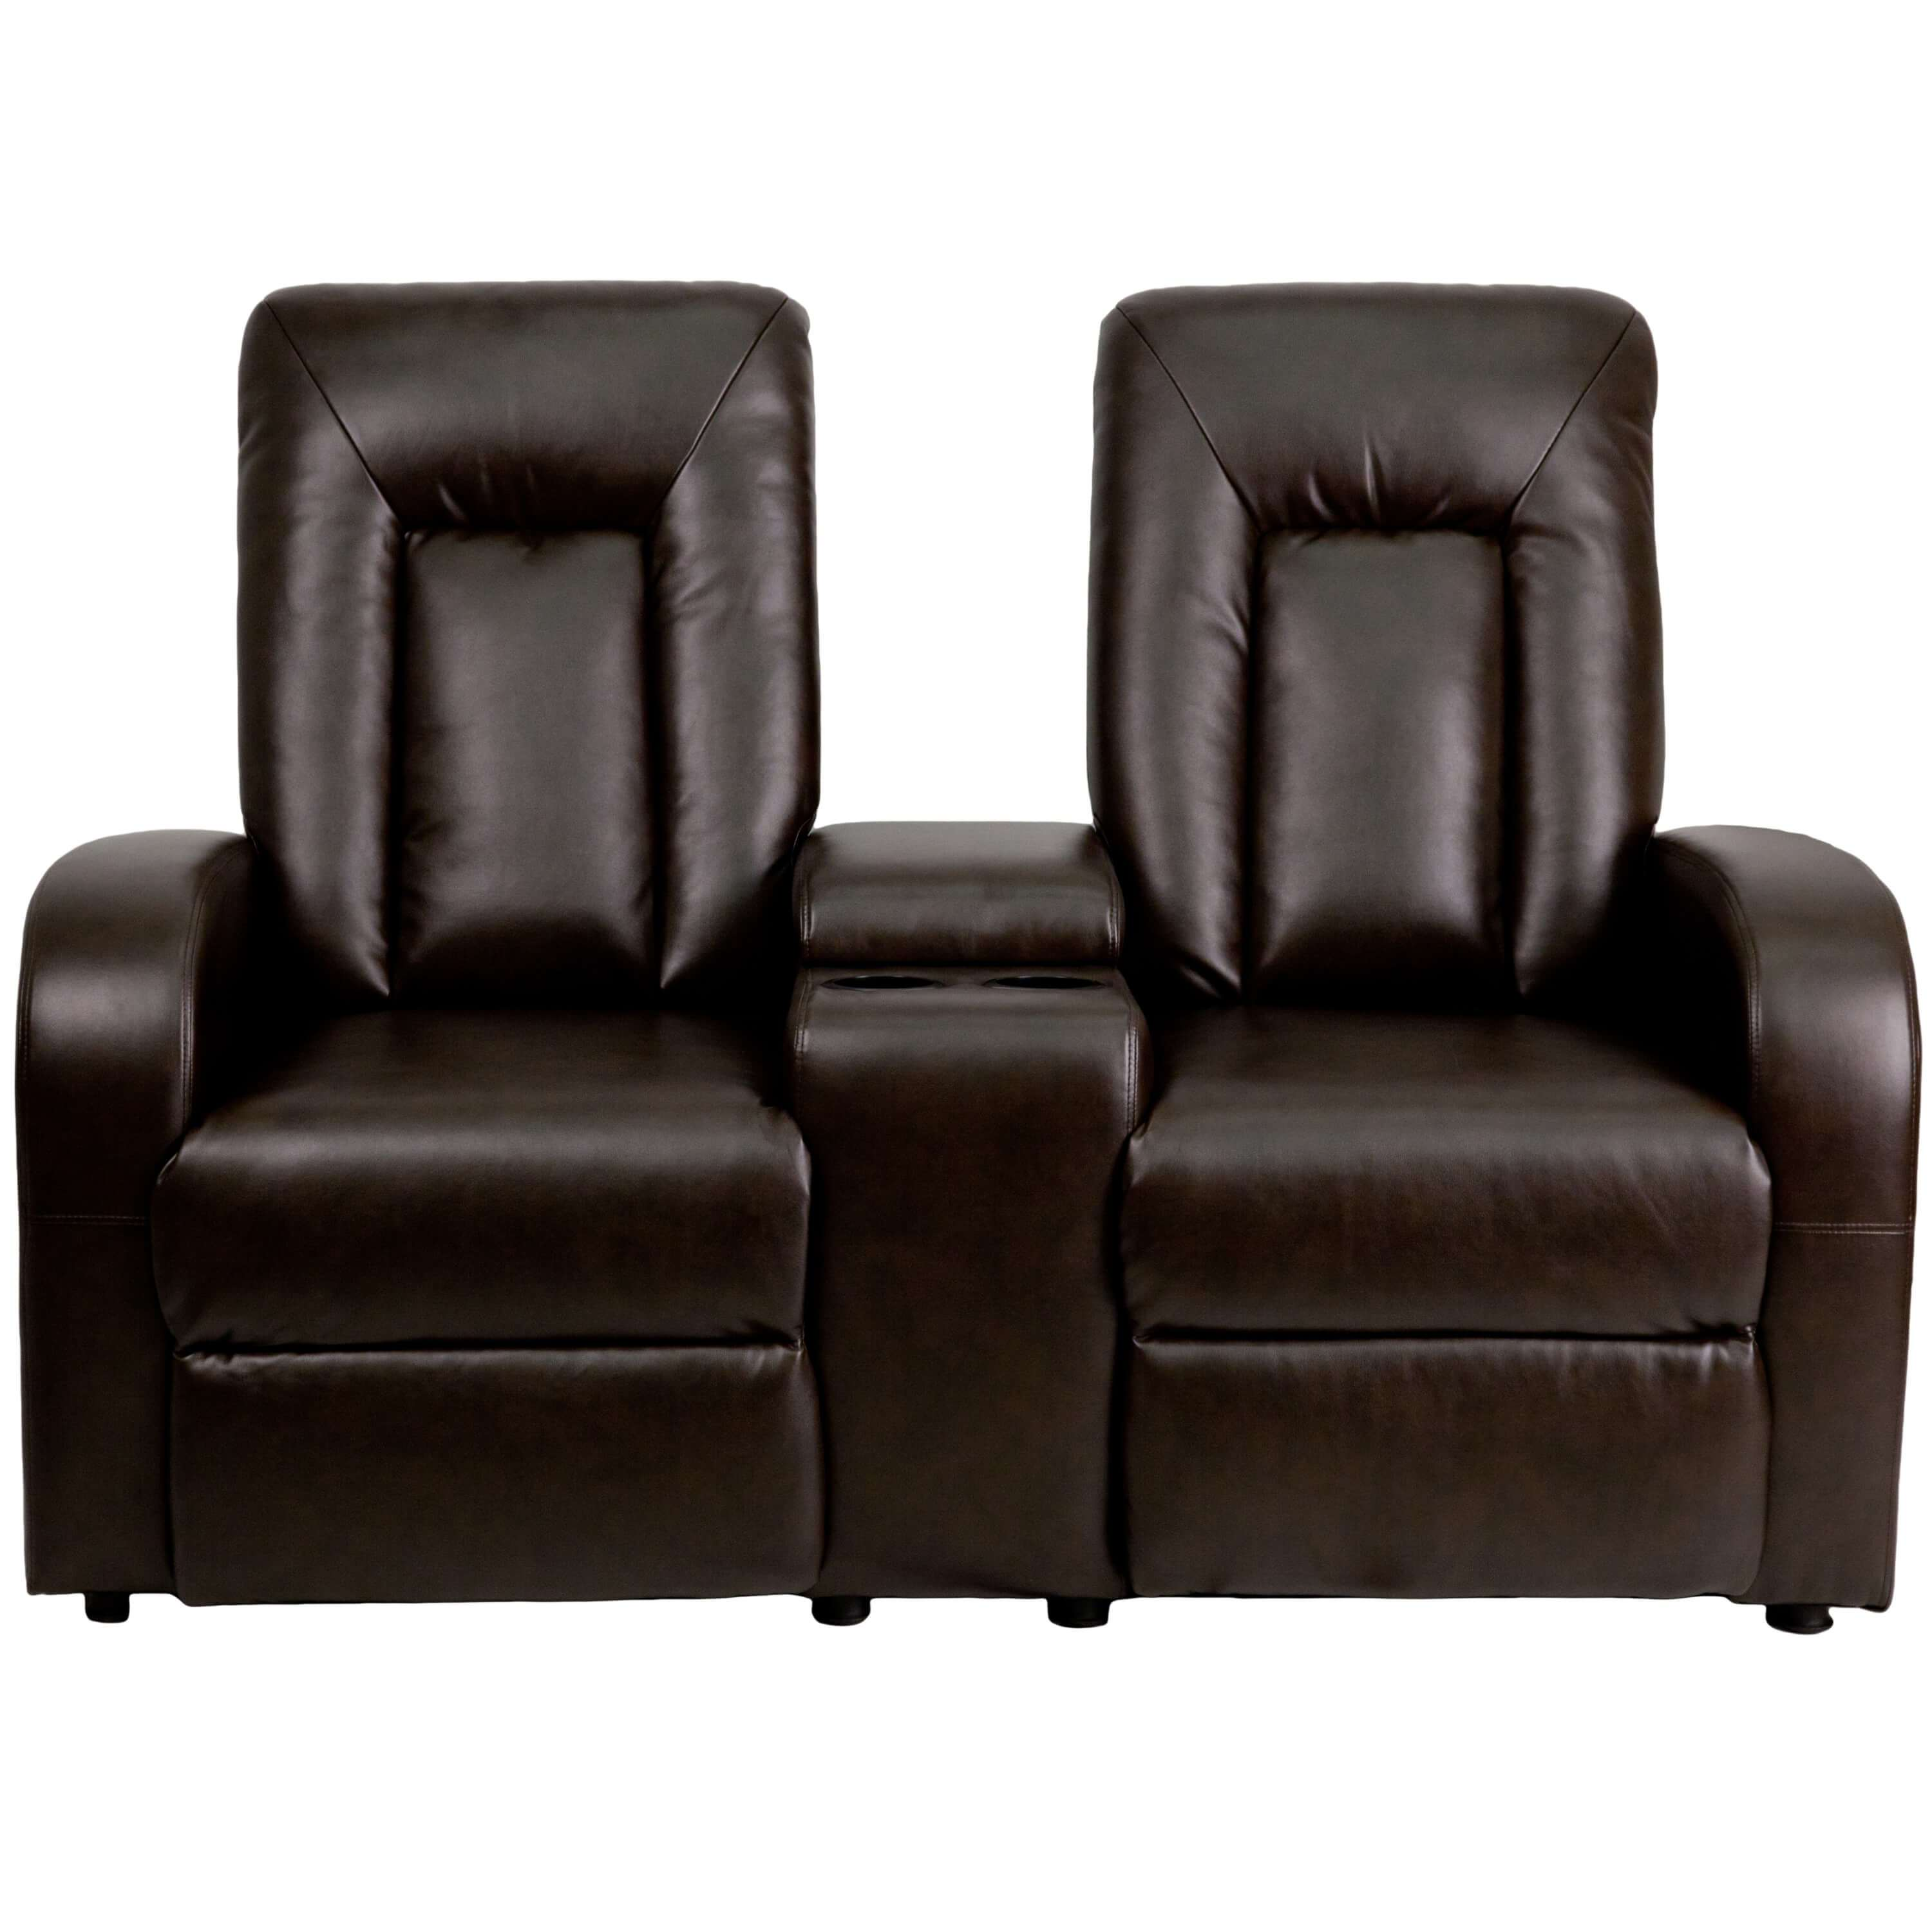 Home theater recliners CUB BT 70259 2 P BRN GG FLA